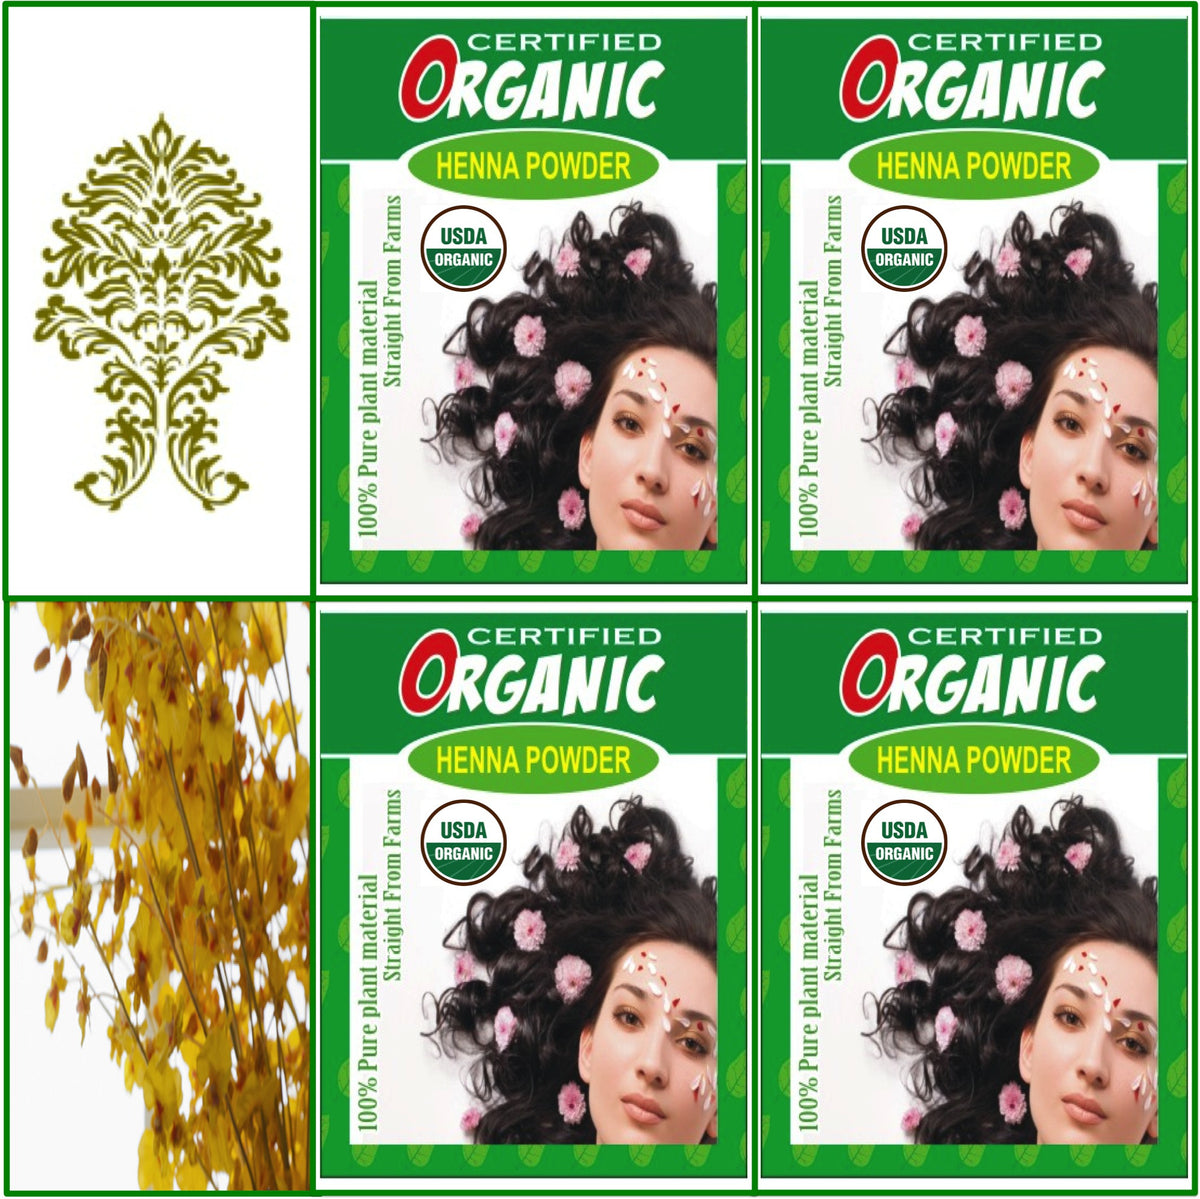 4 Boxes. USDA Certified Organic Henna. Hair Color. 100g Ea.